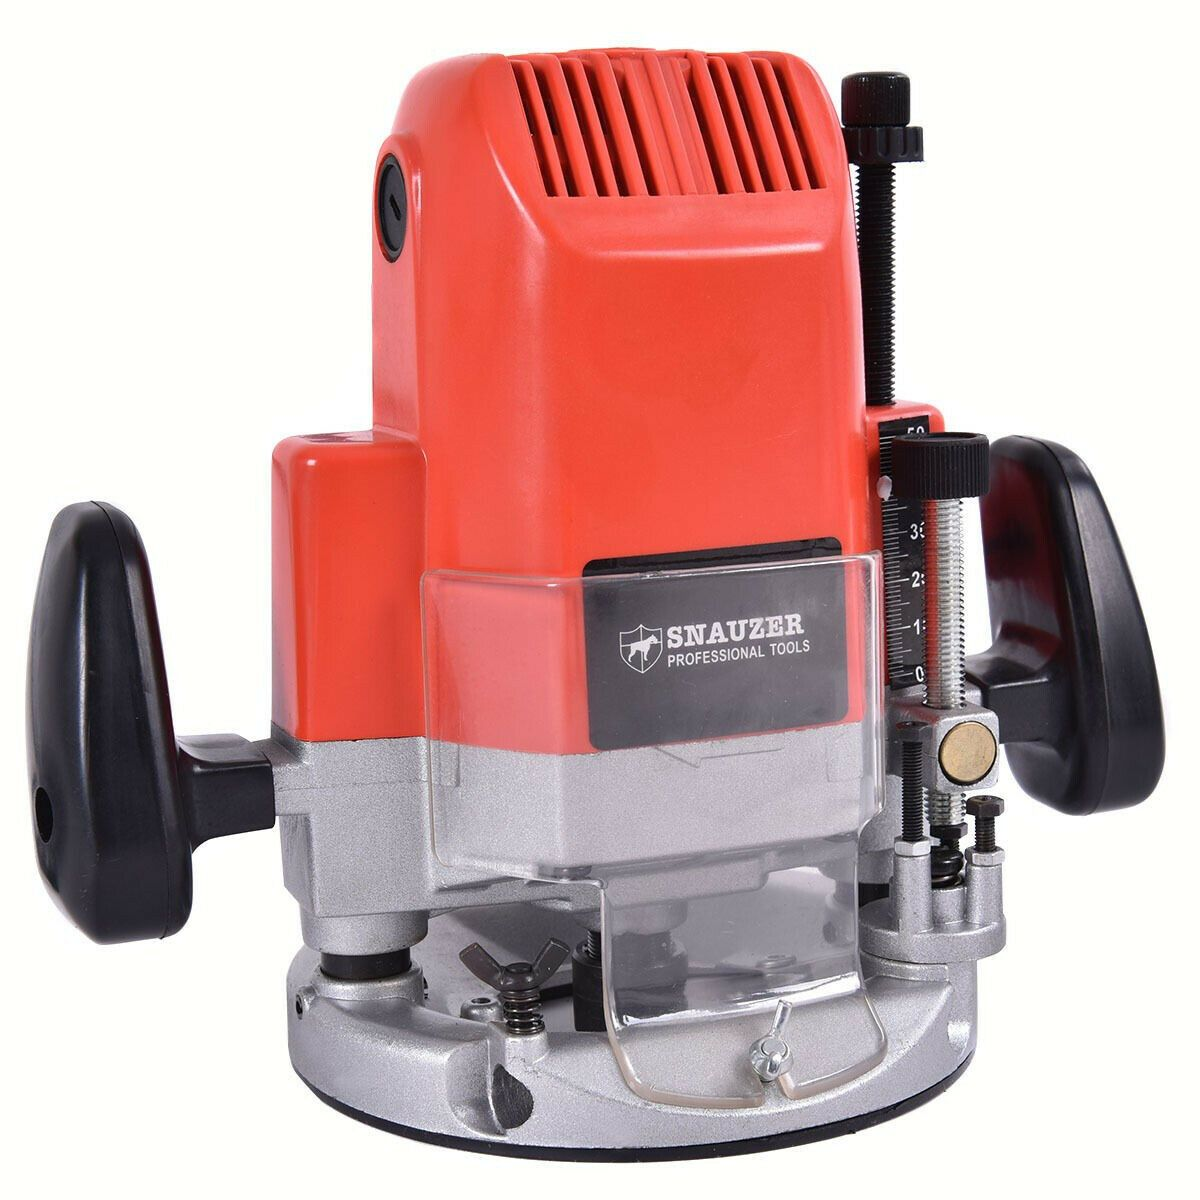 1 4 And 3 8 Electric Plunge Router Wood Routing Machine Collet Variable Speed 796914860389 Ebay Plunge Router Wood Router Router